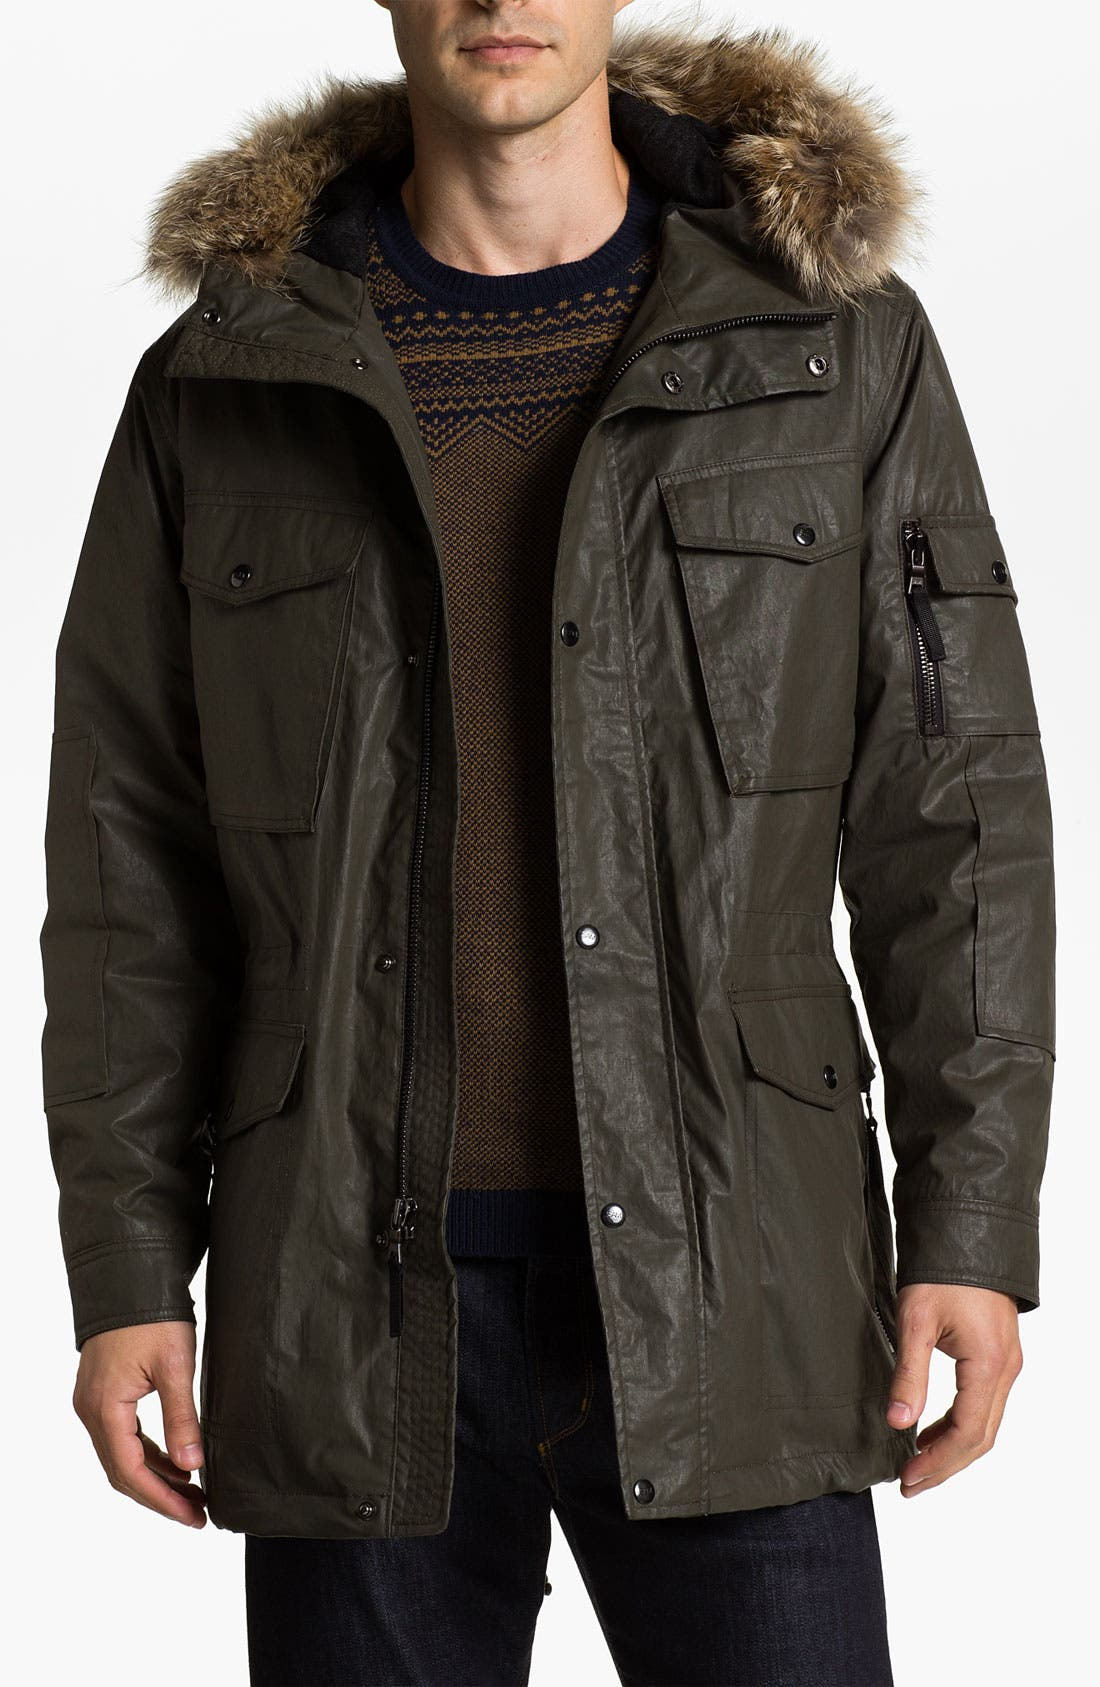 Alternate Image 1 Selected - Sam Field Jacket with Genuine Coyote Trim (Online Exclusive)